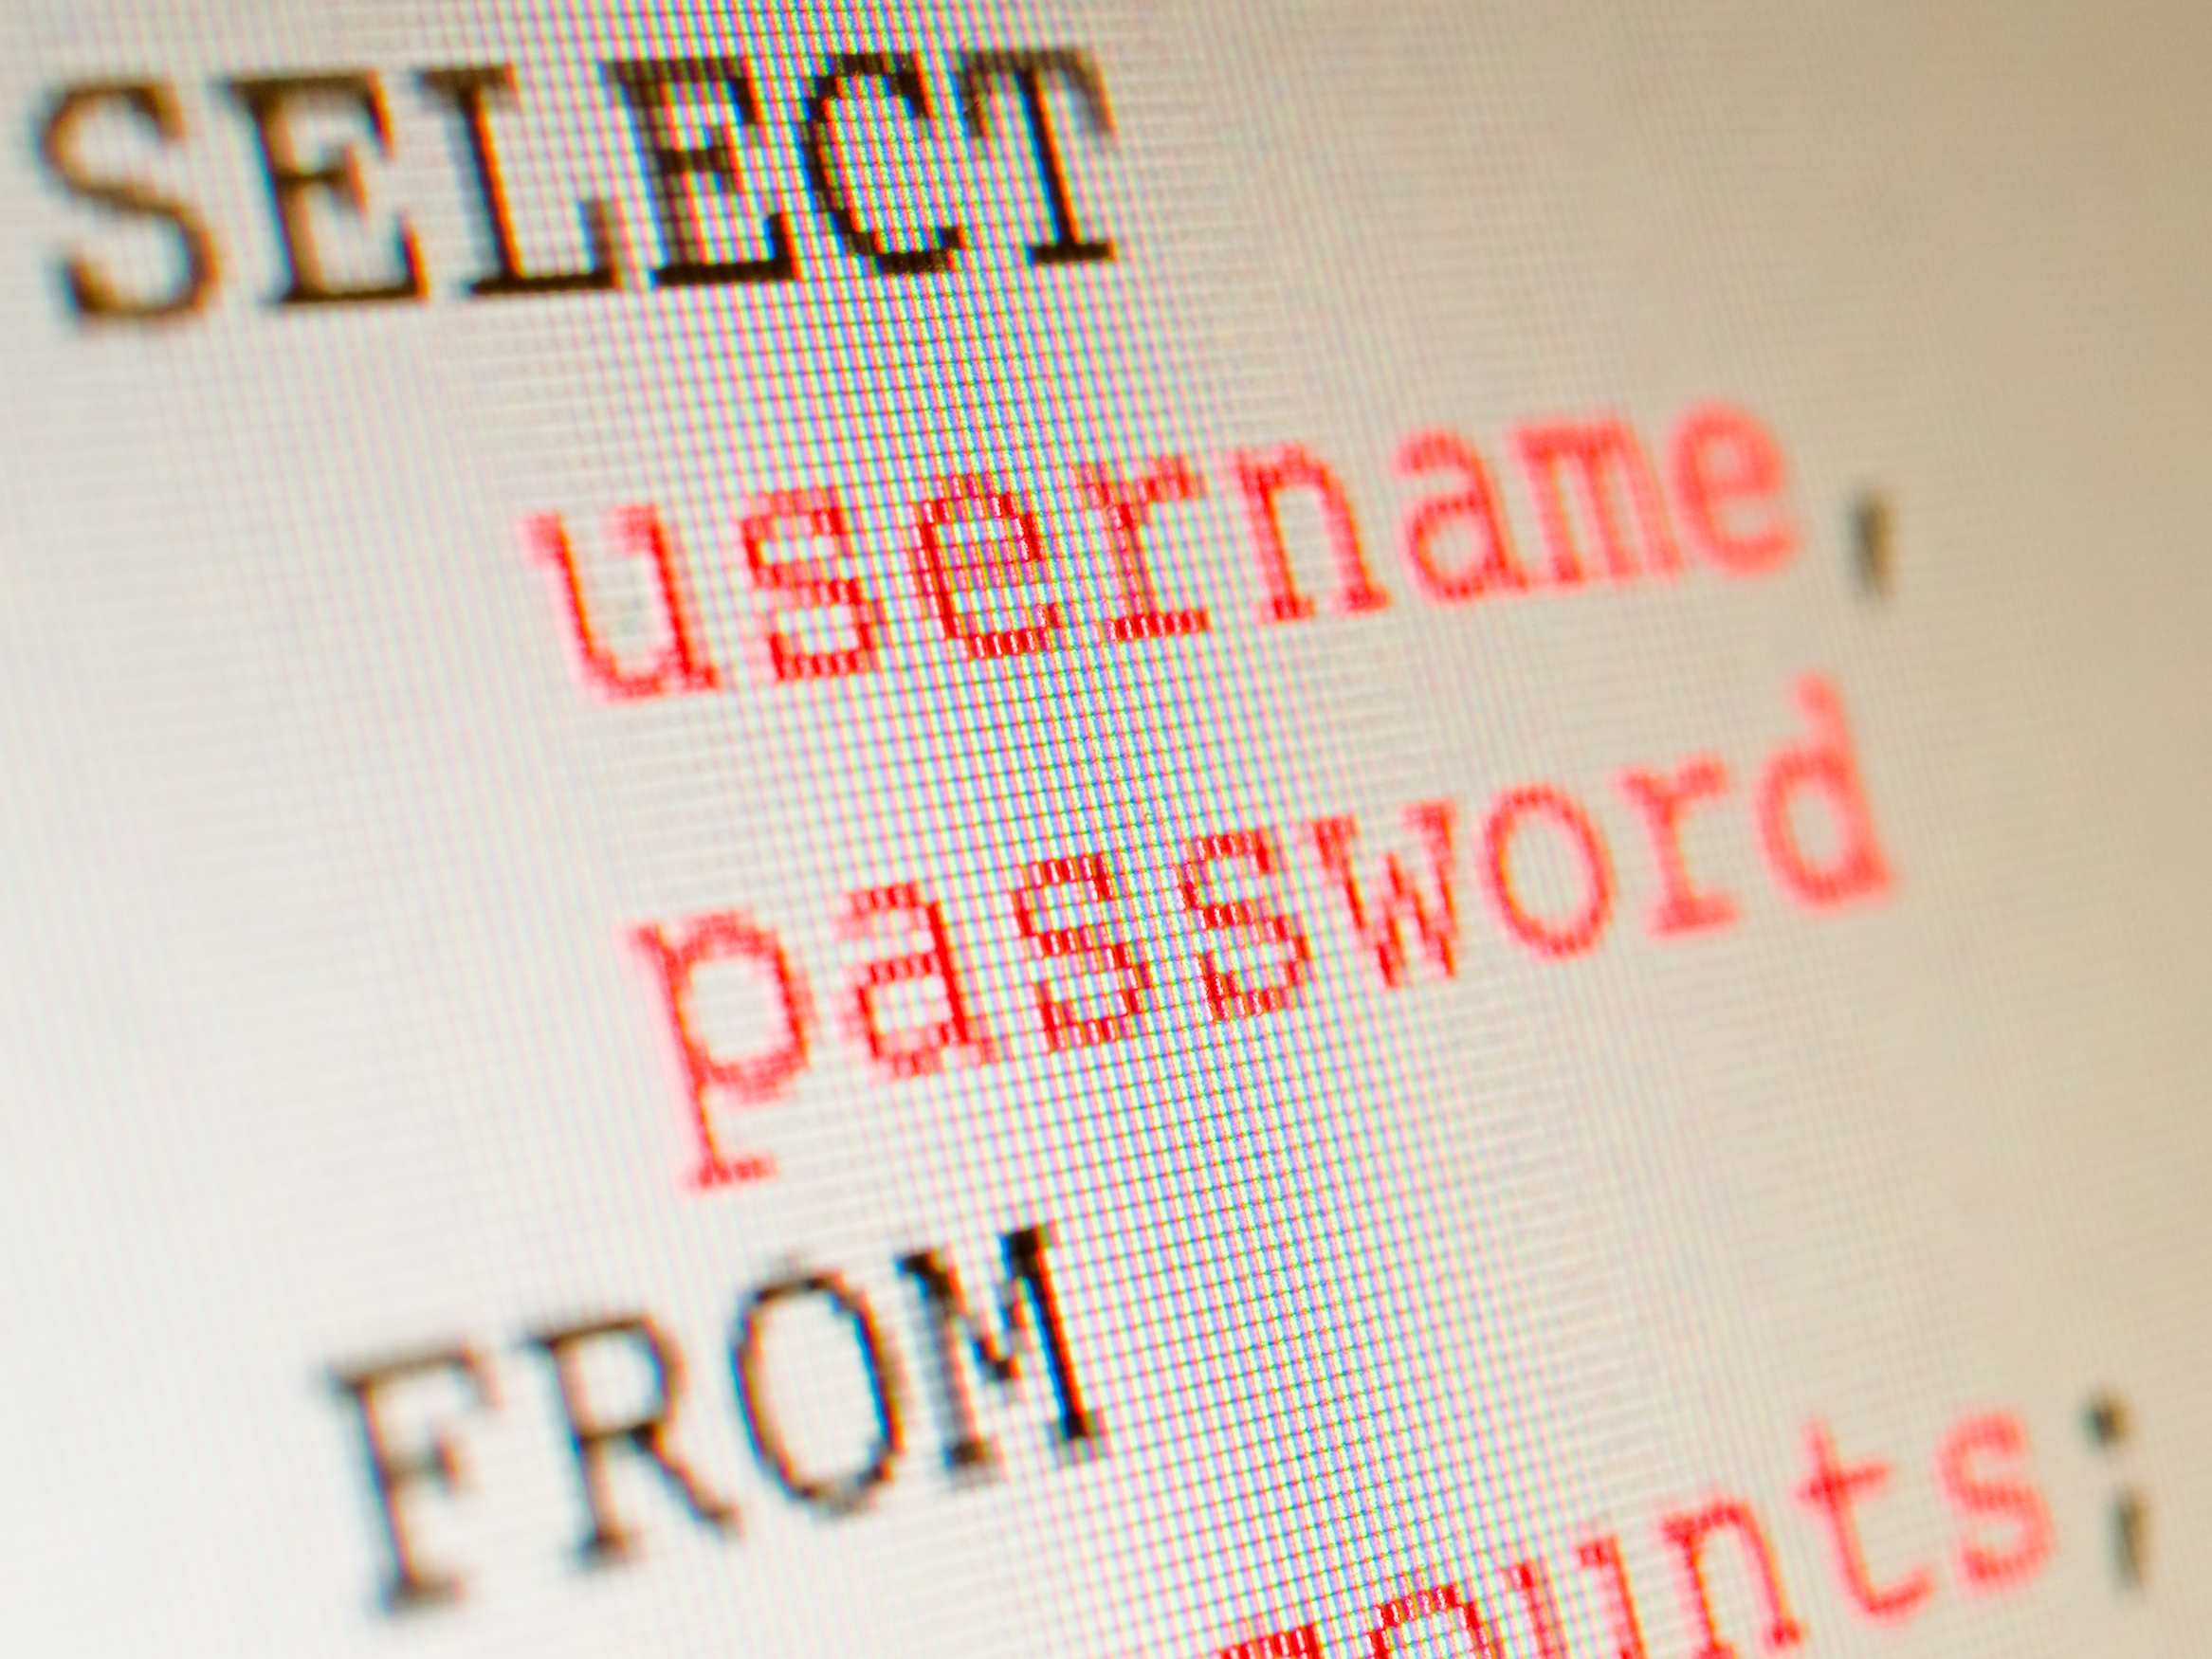 Many Web Applications are vulnerable to injection attacks, such as SQL Injection